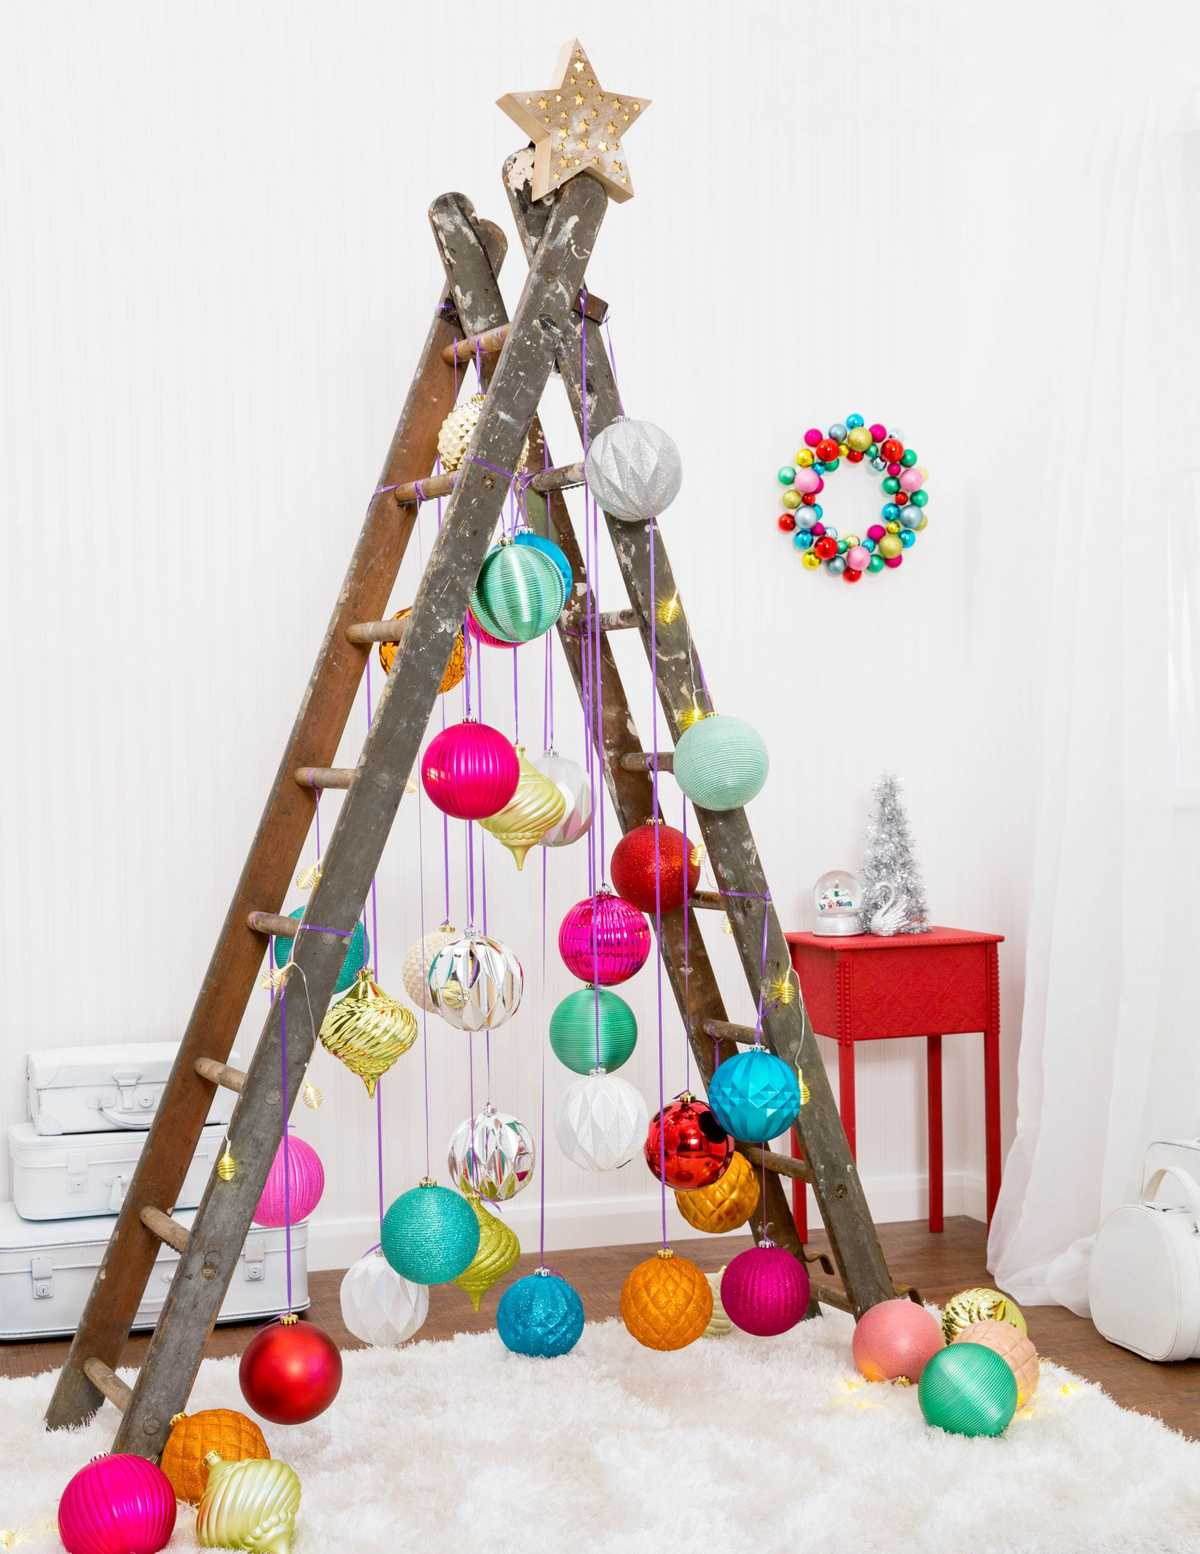 A ladder Christmas tree is a creative and hopefully non-toxic alternative to an artificial tree